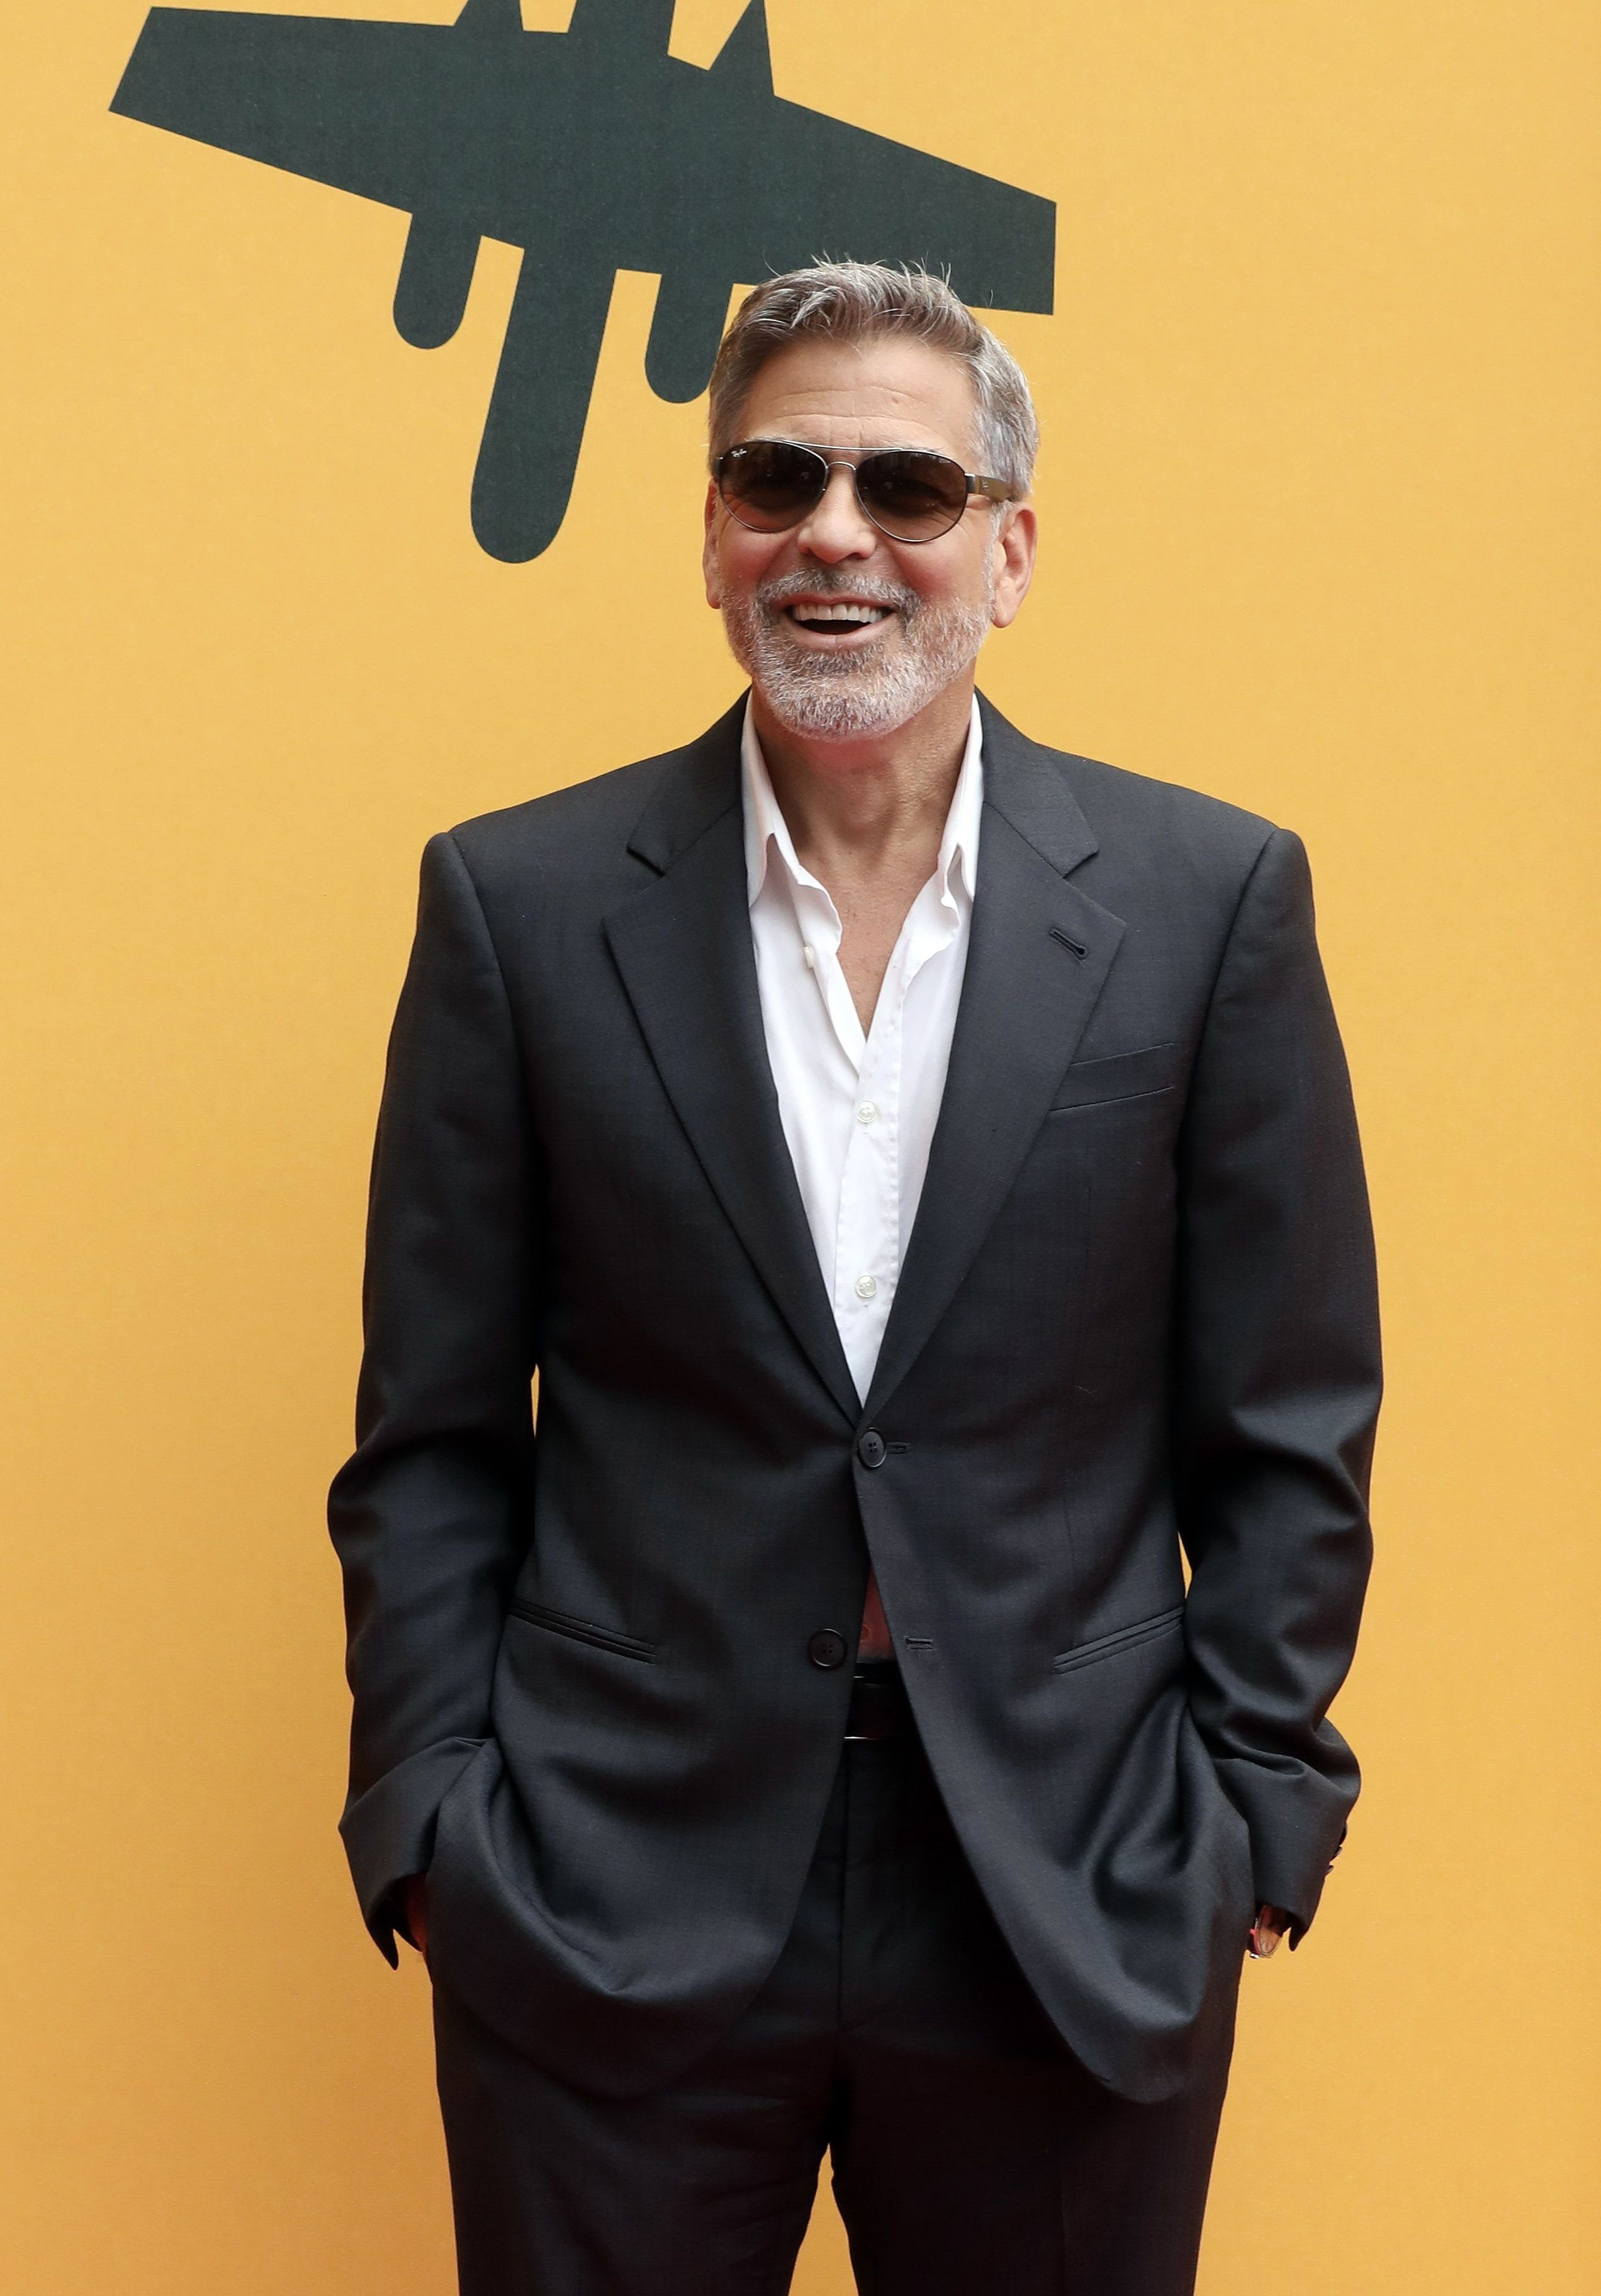 George Clooney at 'Catch-22' Photocall, a Sky production, at The Space Moderno Cinema on May 13, 2019 | Photo: Getty Images